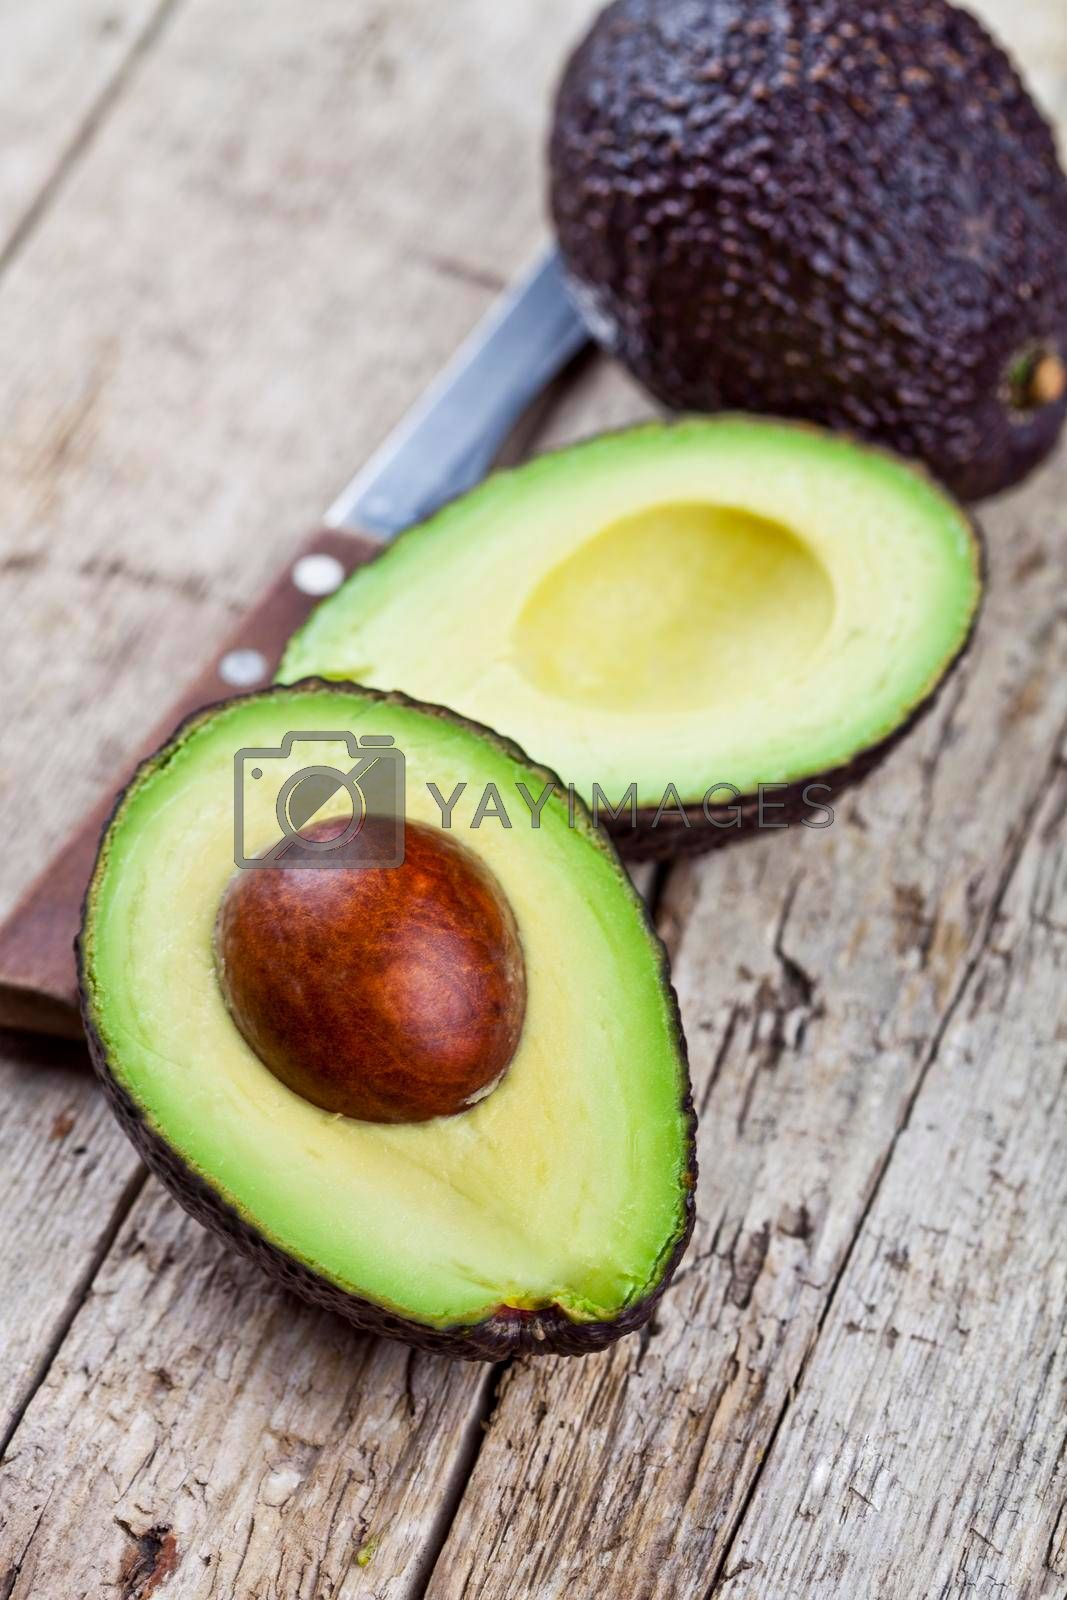 Fresh organic avocado and knife on old wooden table background. Fresh avocado halves on rustic wooden backround. Healthy food concept.